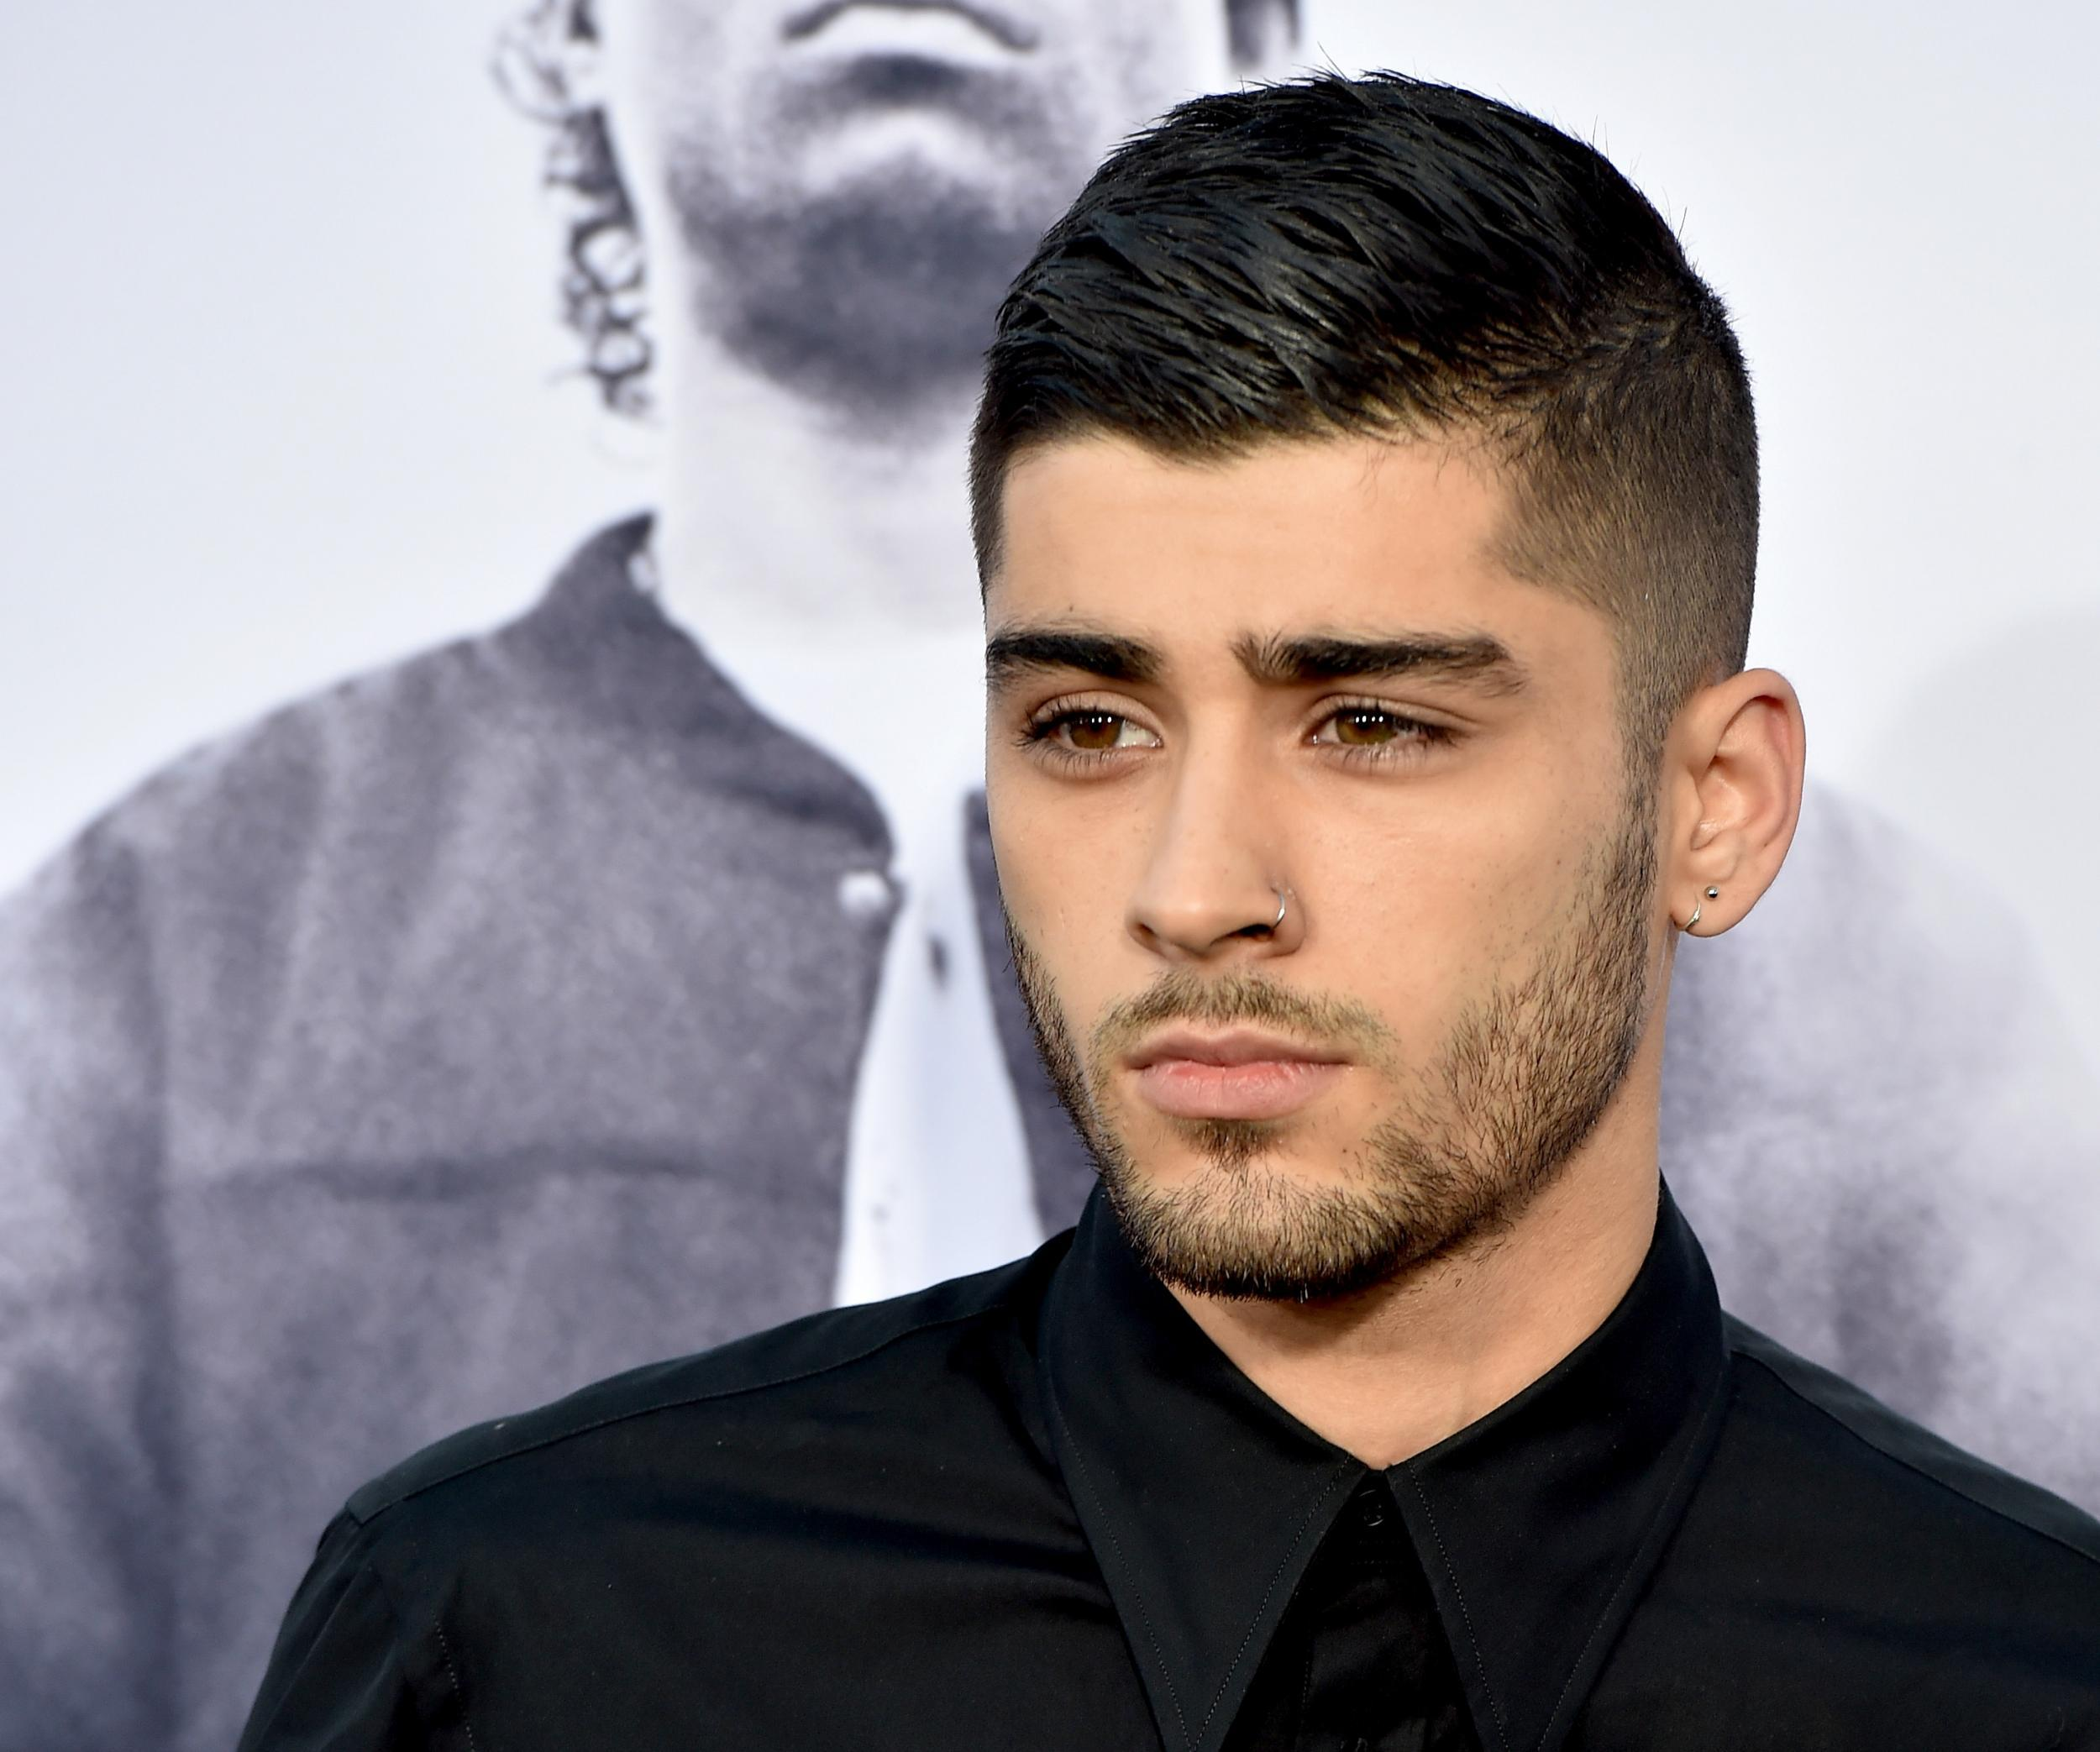 Zayn Malik says he is no longer Muslim | The Independent